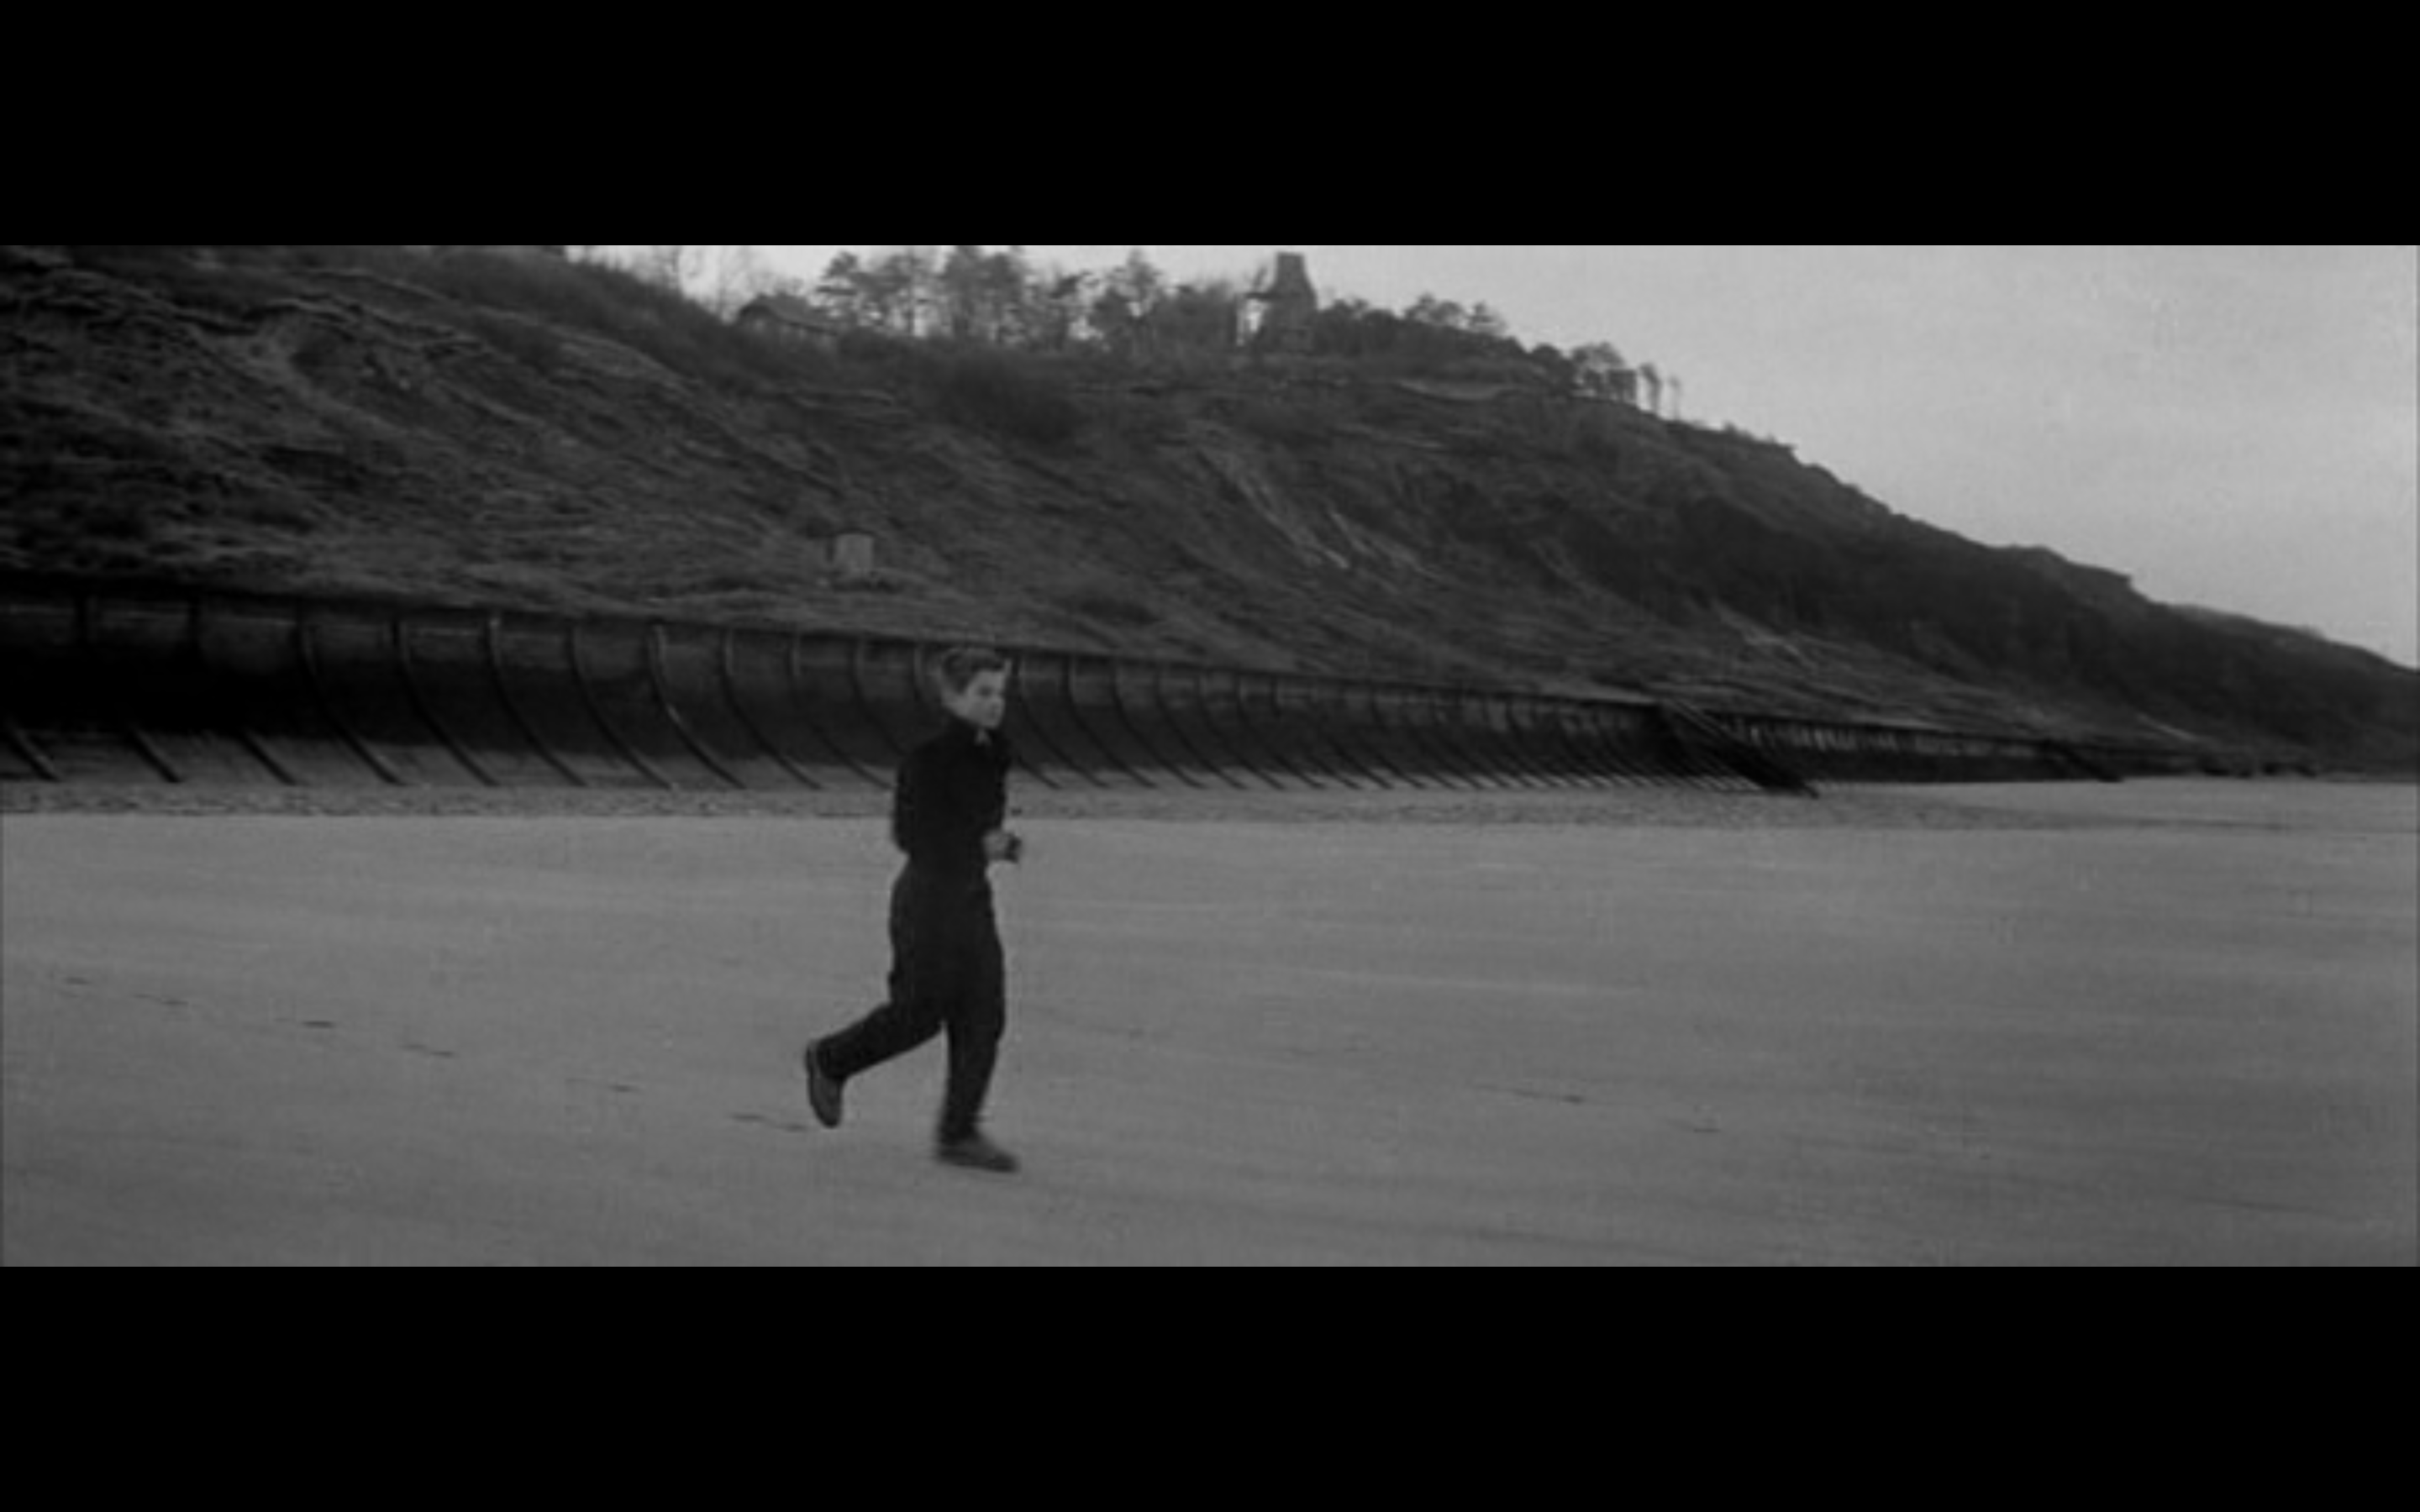 'The 400 Blows', 1959. Directed by François Truffaut. Written by François Truffaut, Marcel Moussy